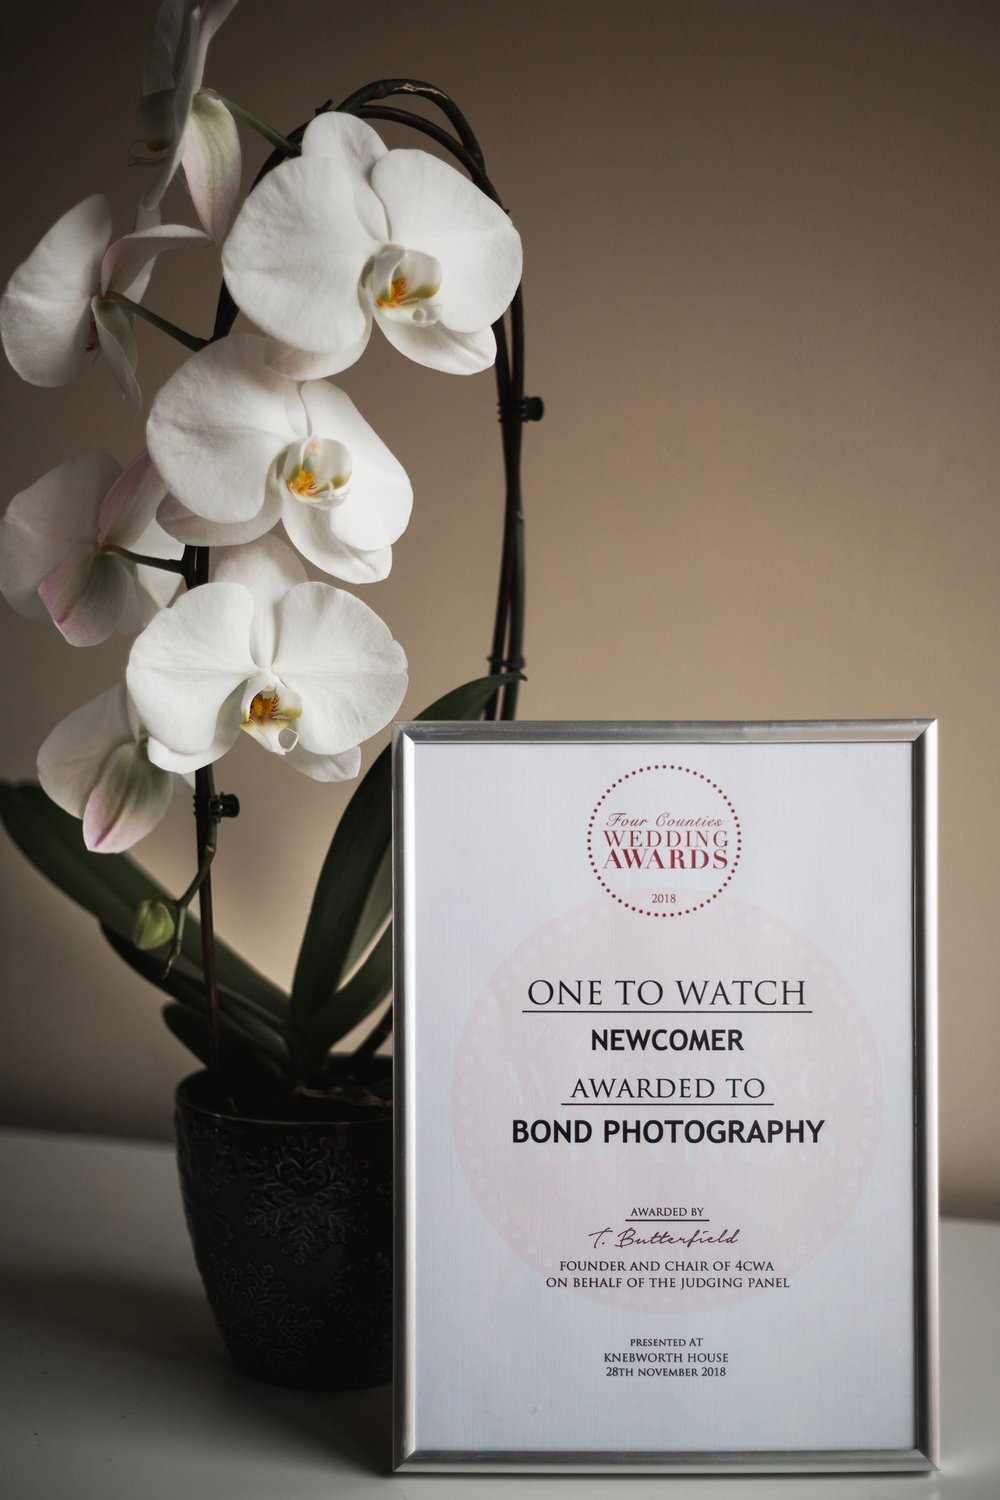 Bond Photography Four counties wedding award winners bedfordshire wedding photographer